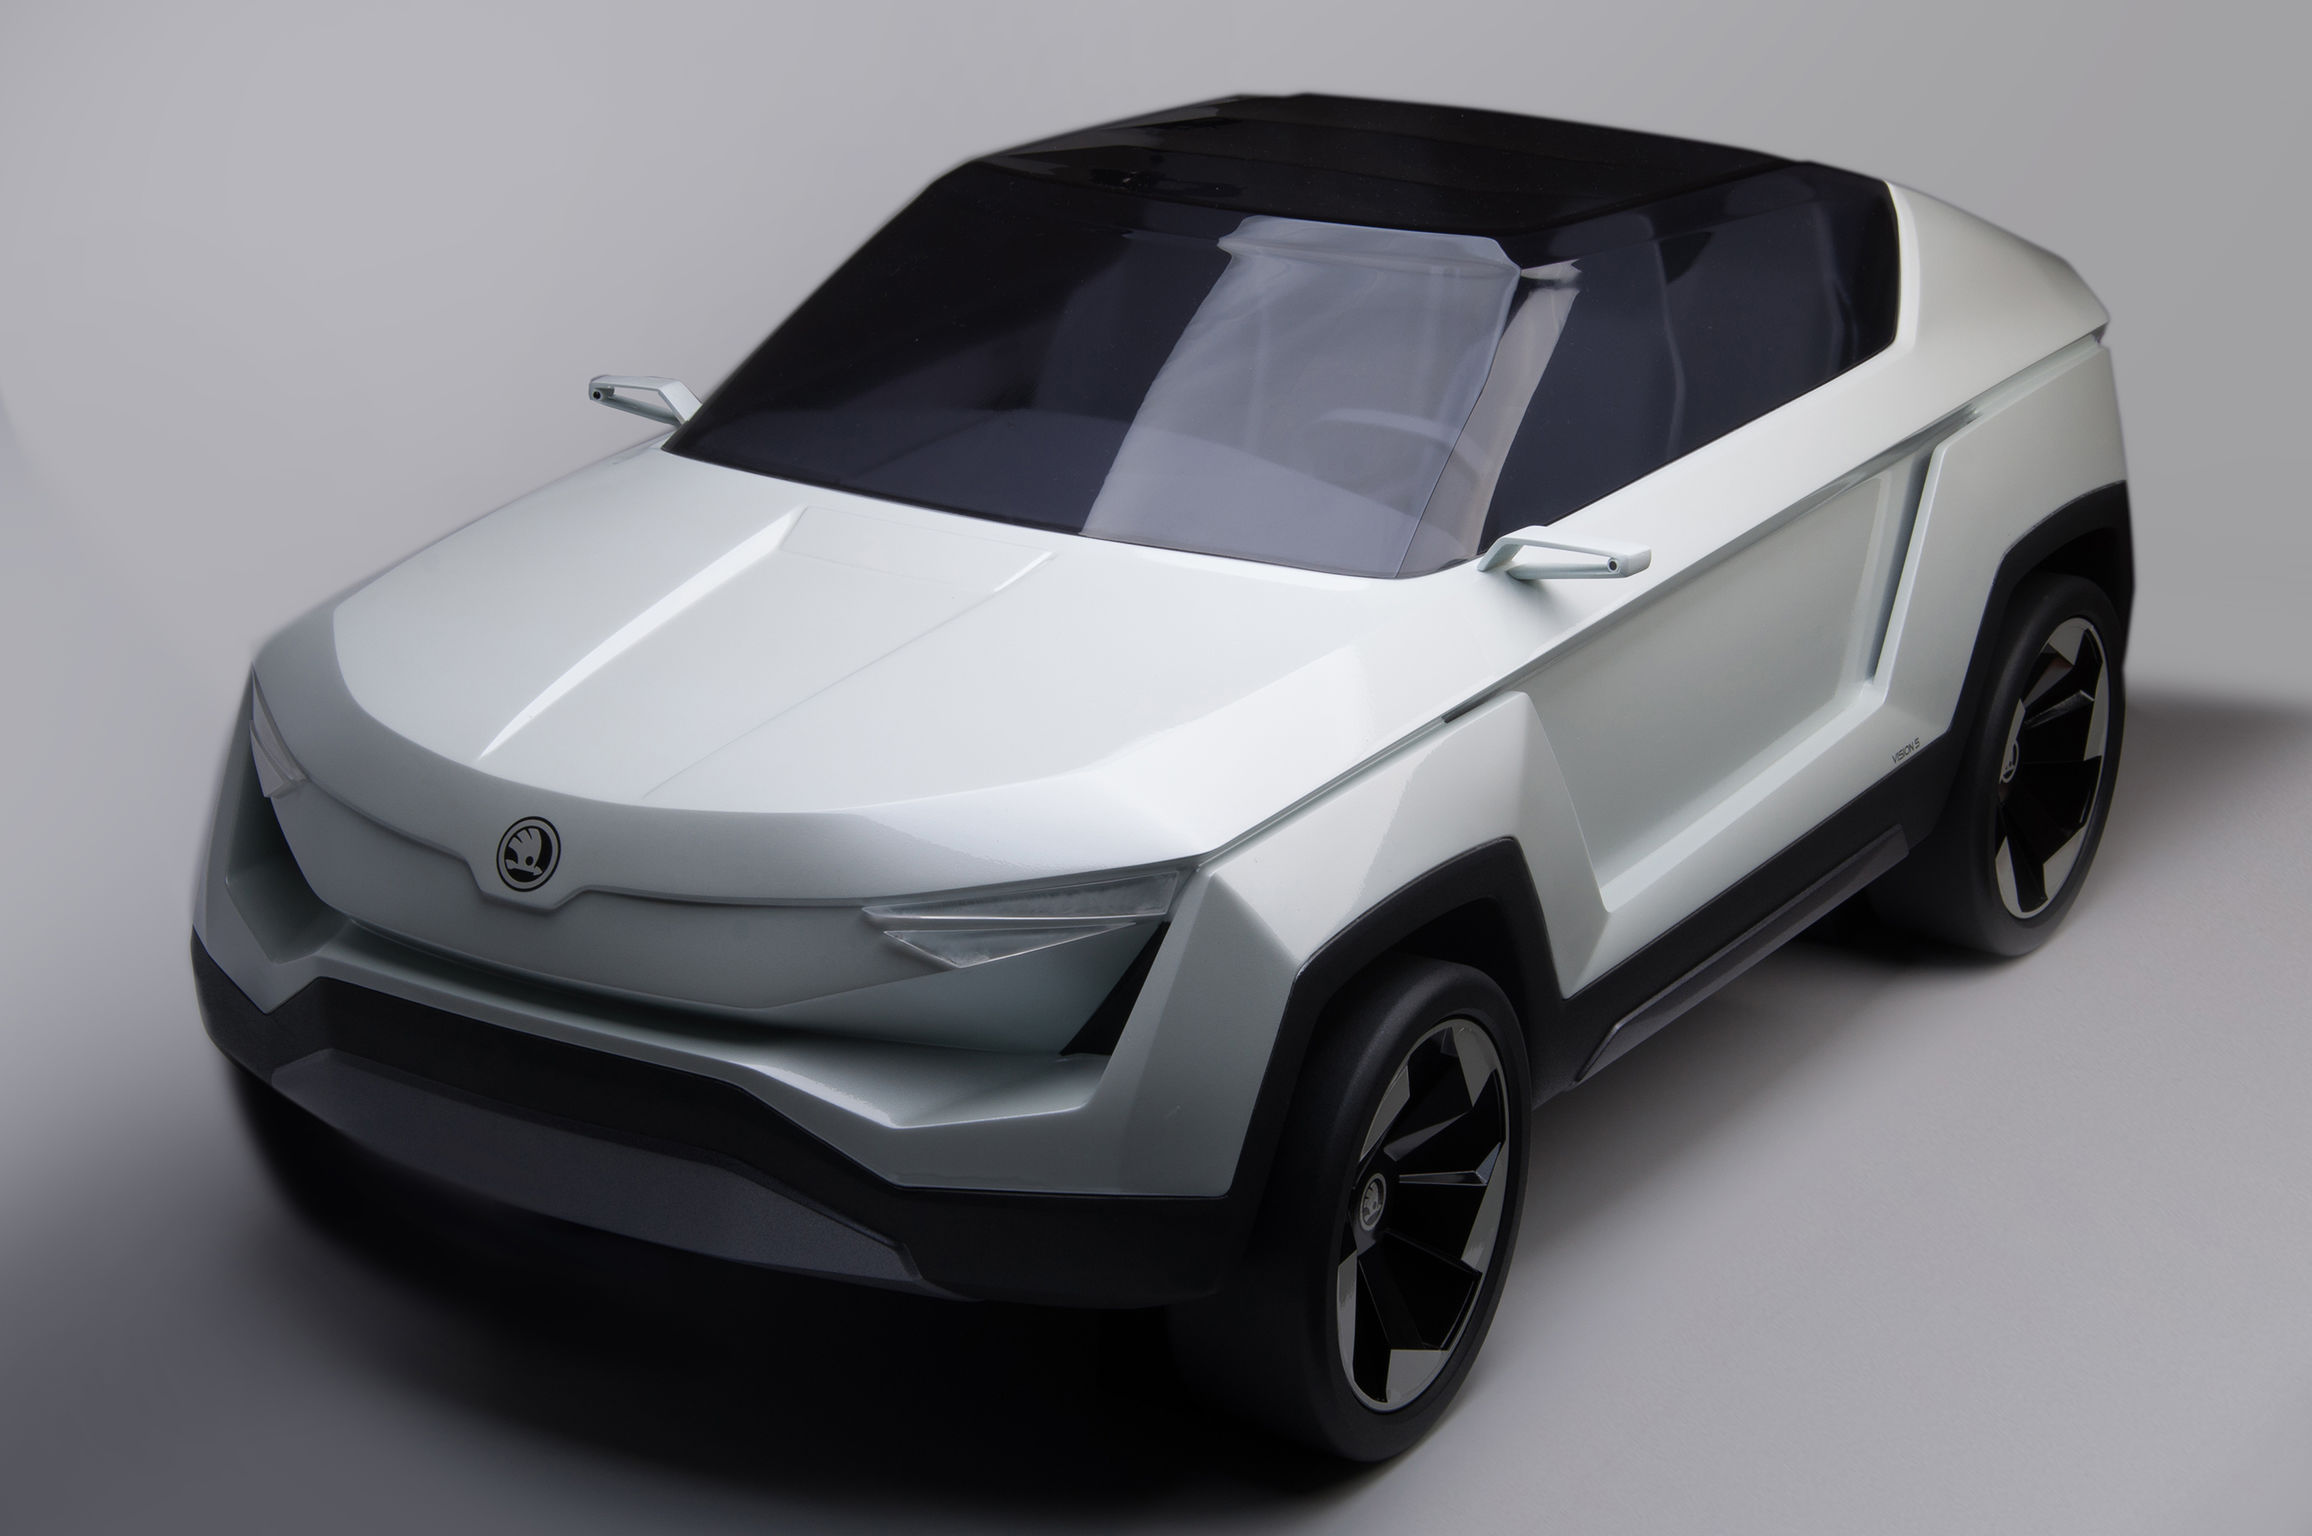 skoda suv vision s entry if world design guide. Black Bedroom Furniture Sets. Home Design Ideas